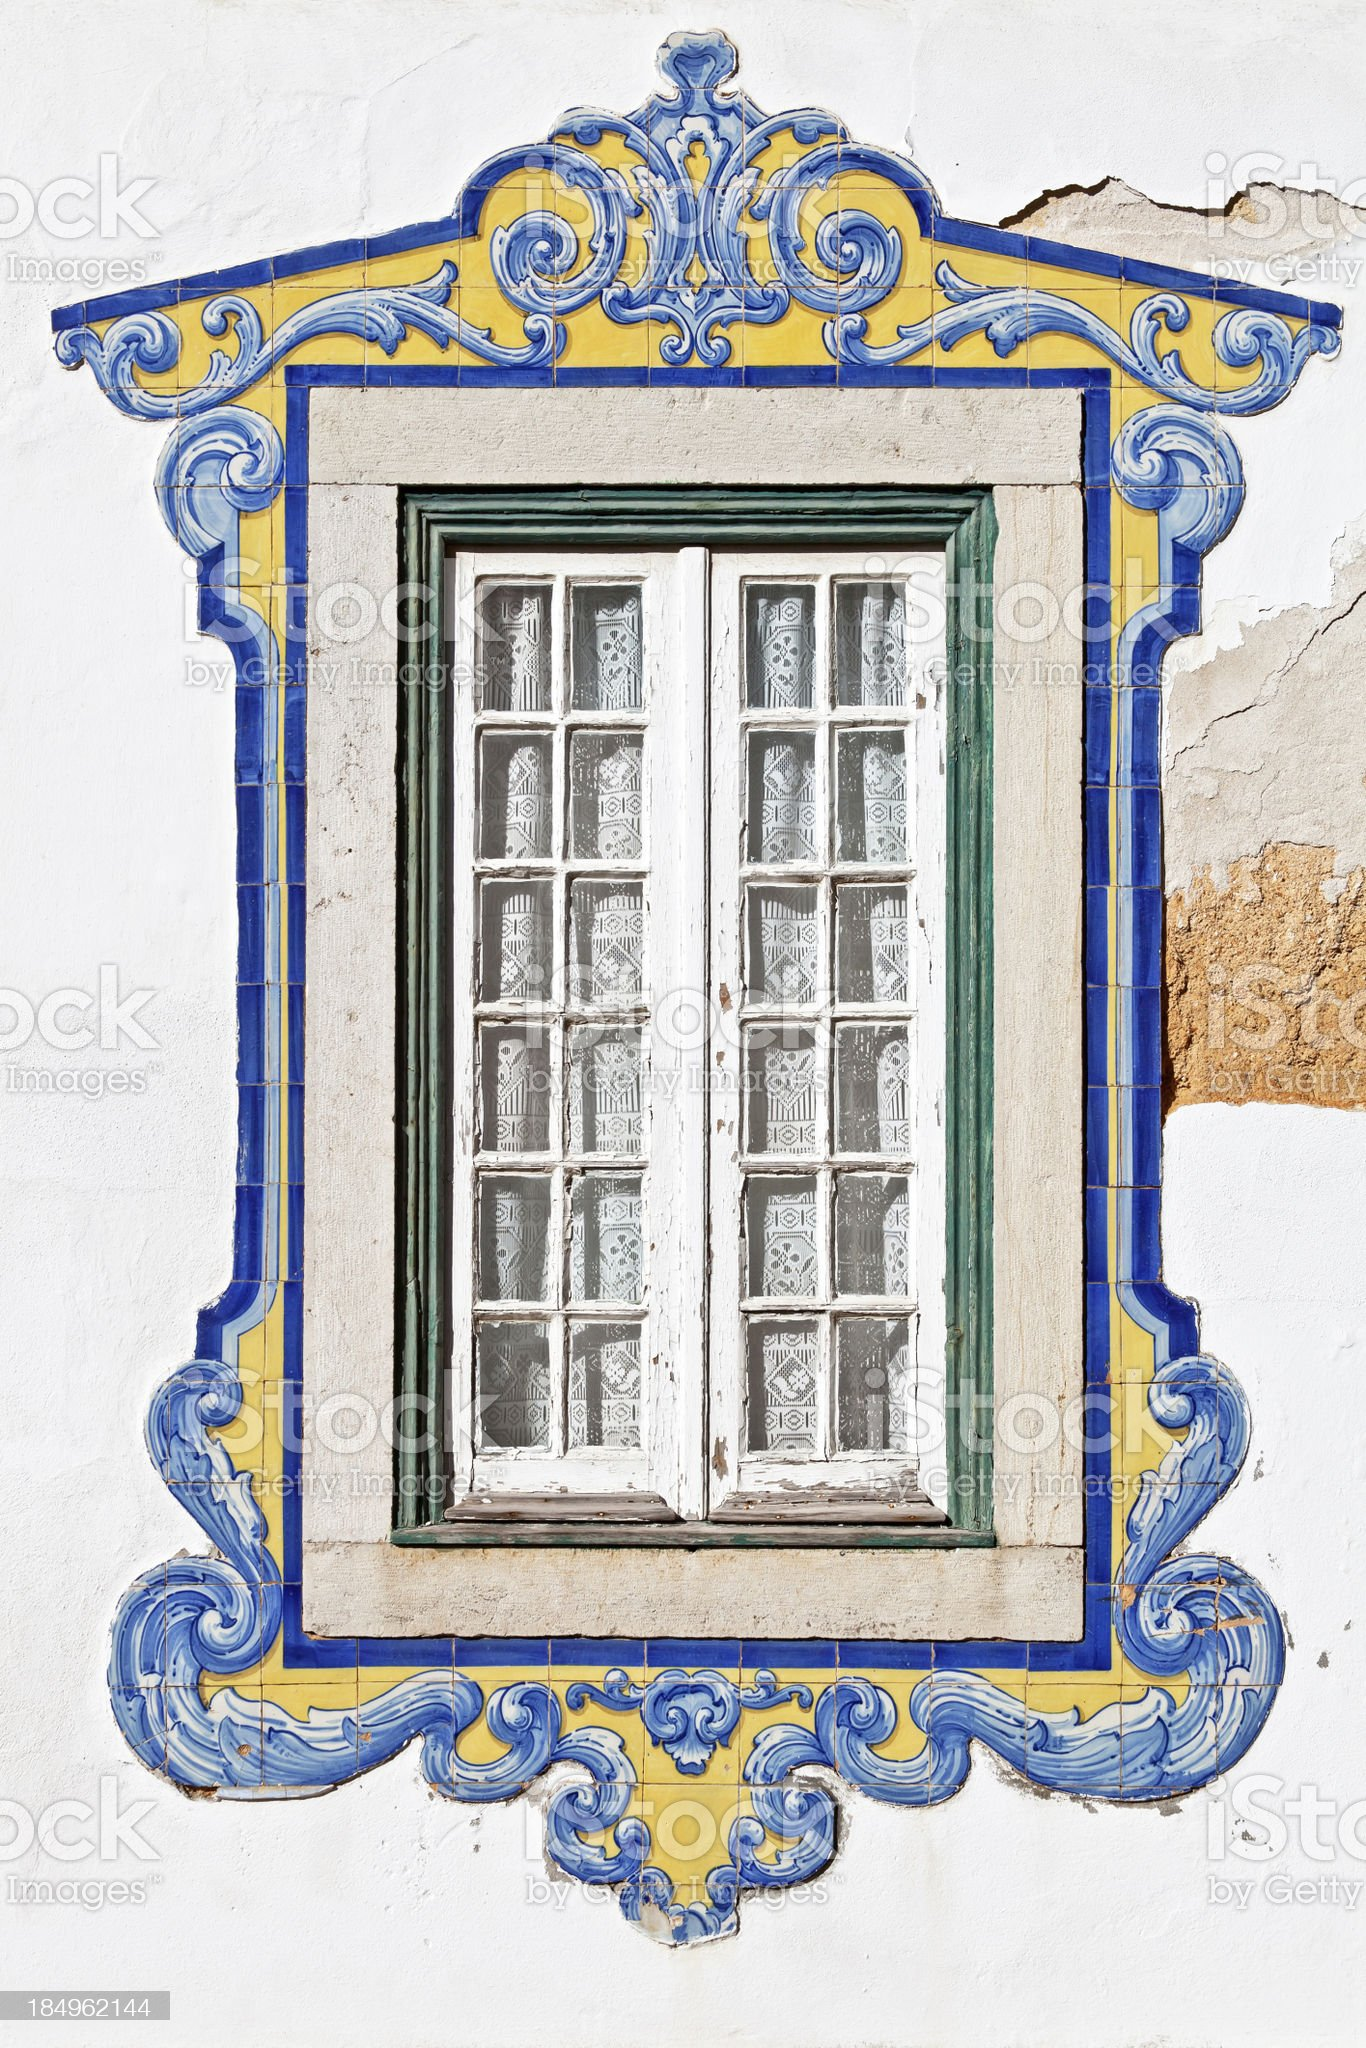 Ornate window royalty-free stock photo